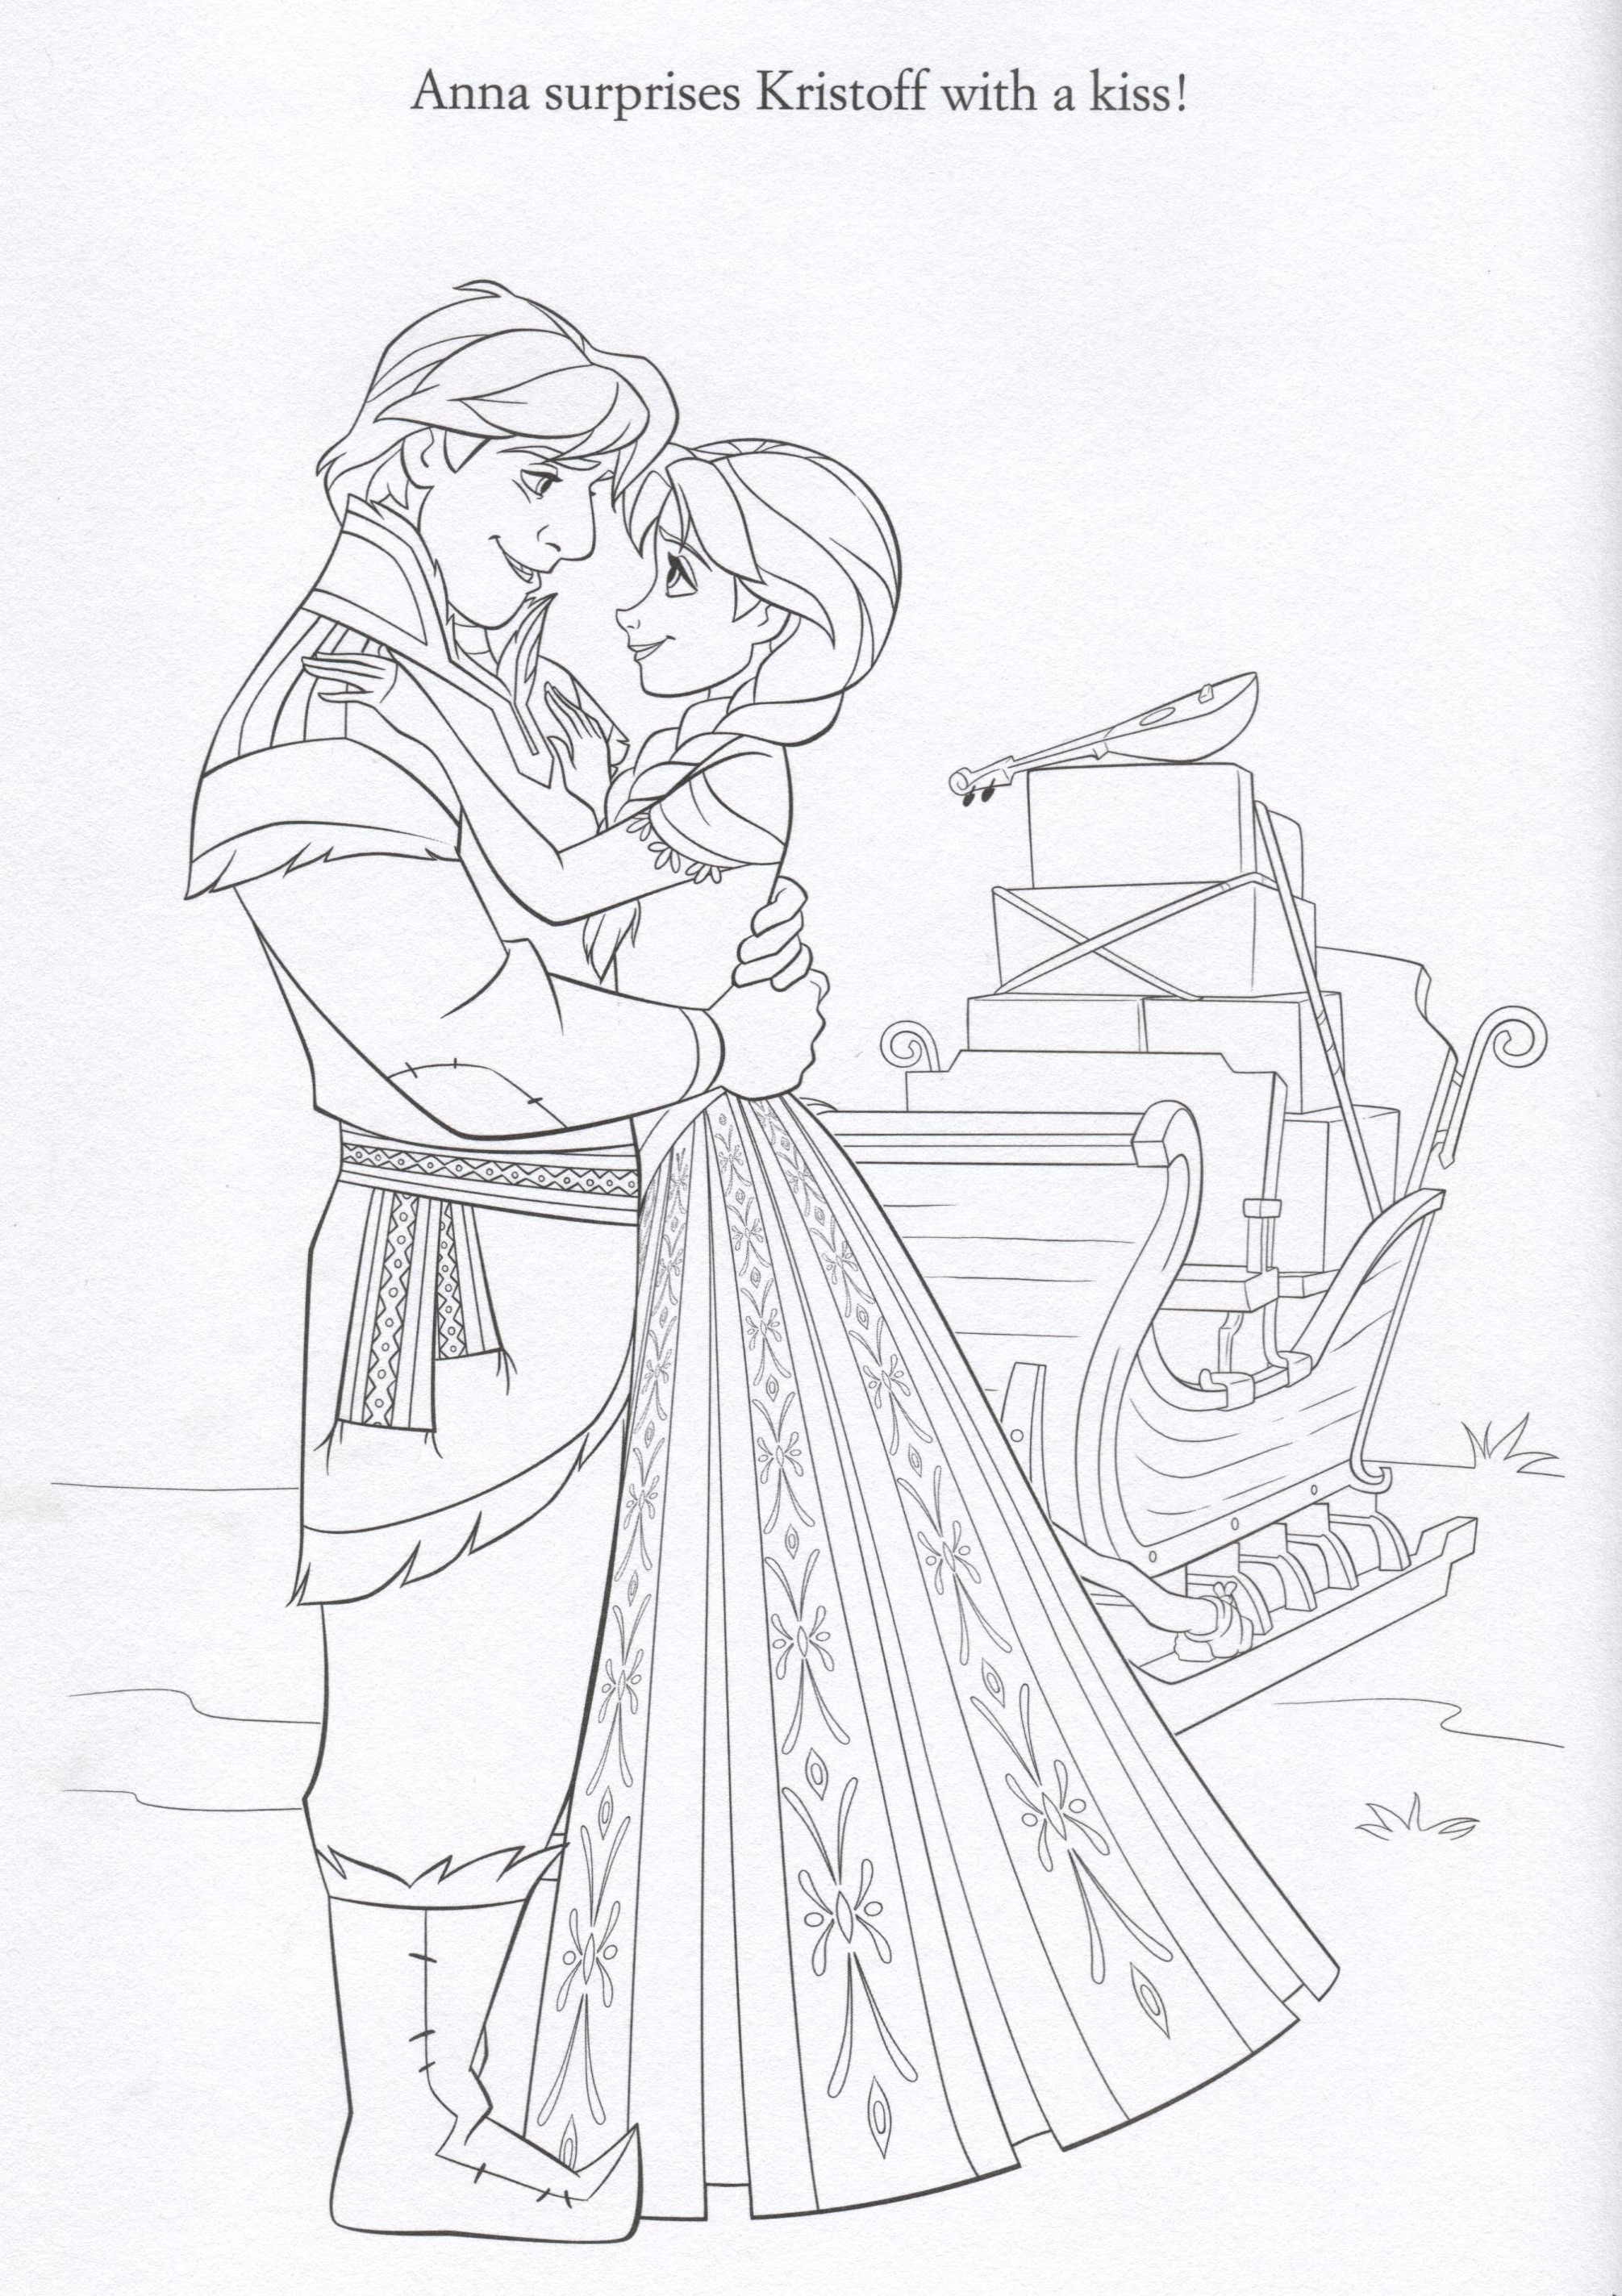 Frozen Coloring Pages Anna And Kristoff Family : Frozen anna kristoff coloring page lovebugs and postcards